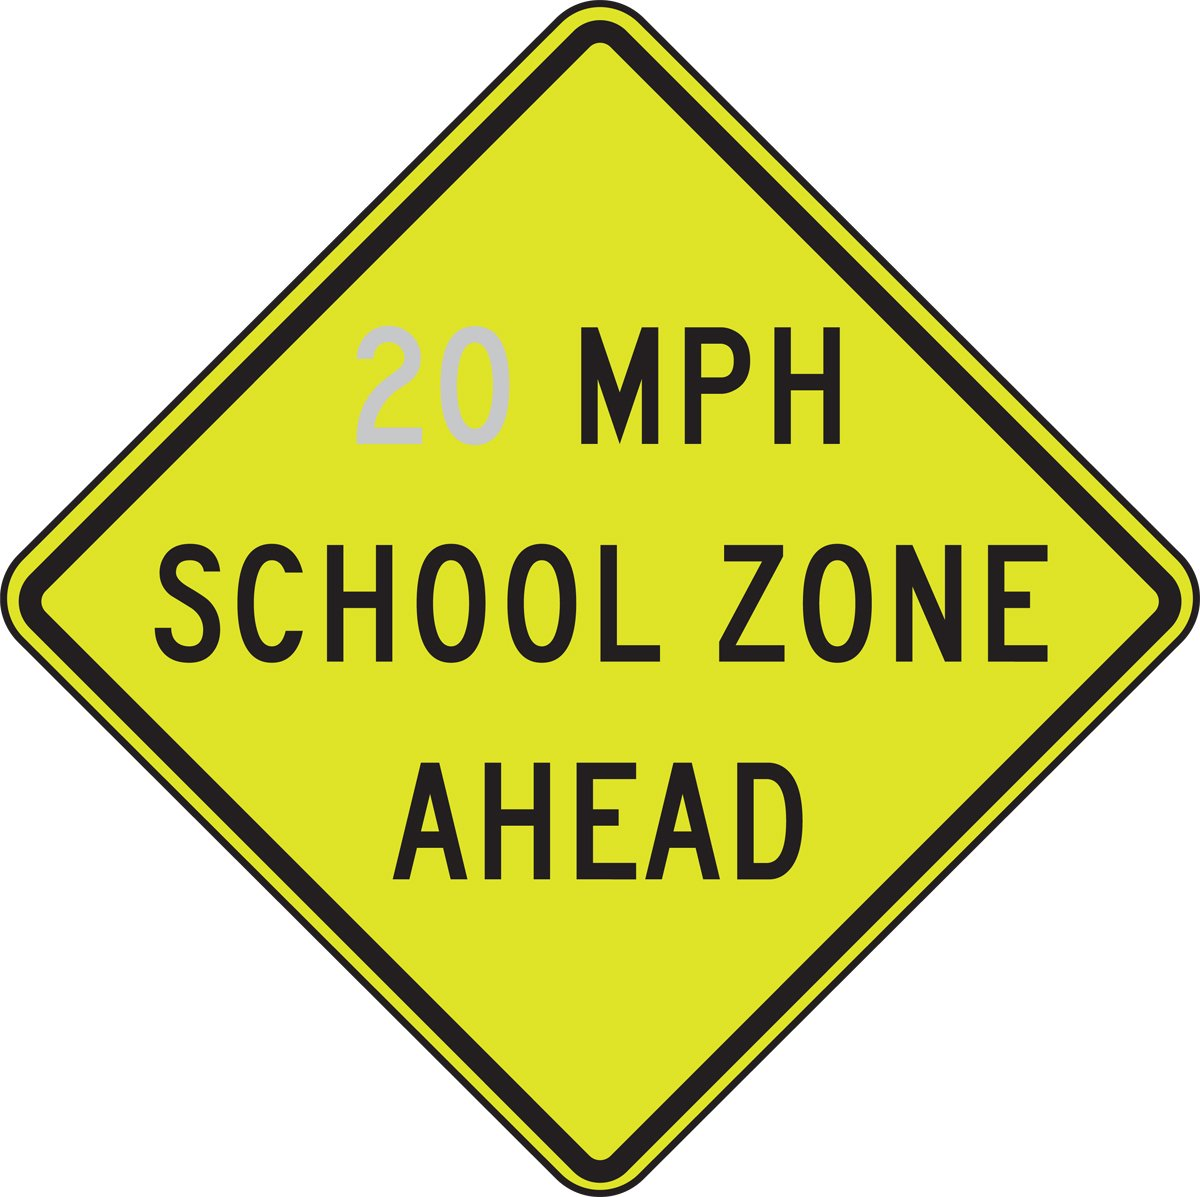 Accuform __ MPH SCHOOL ZONE AHEAD (FRW27020)